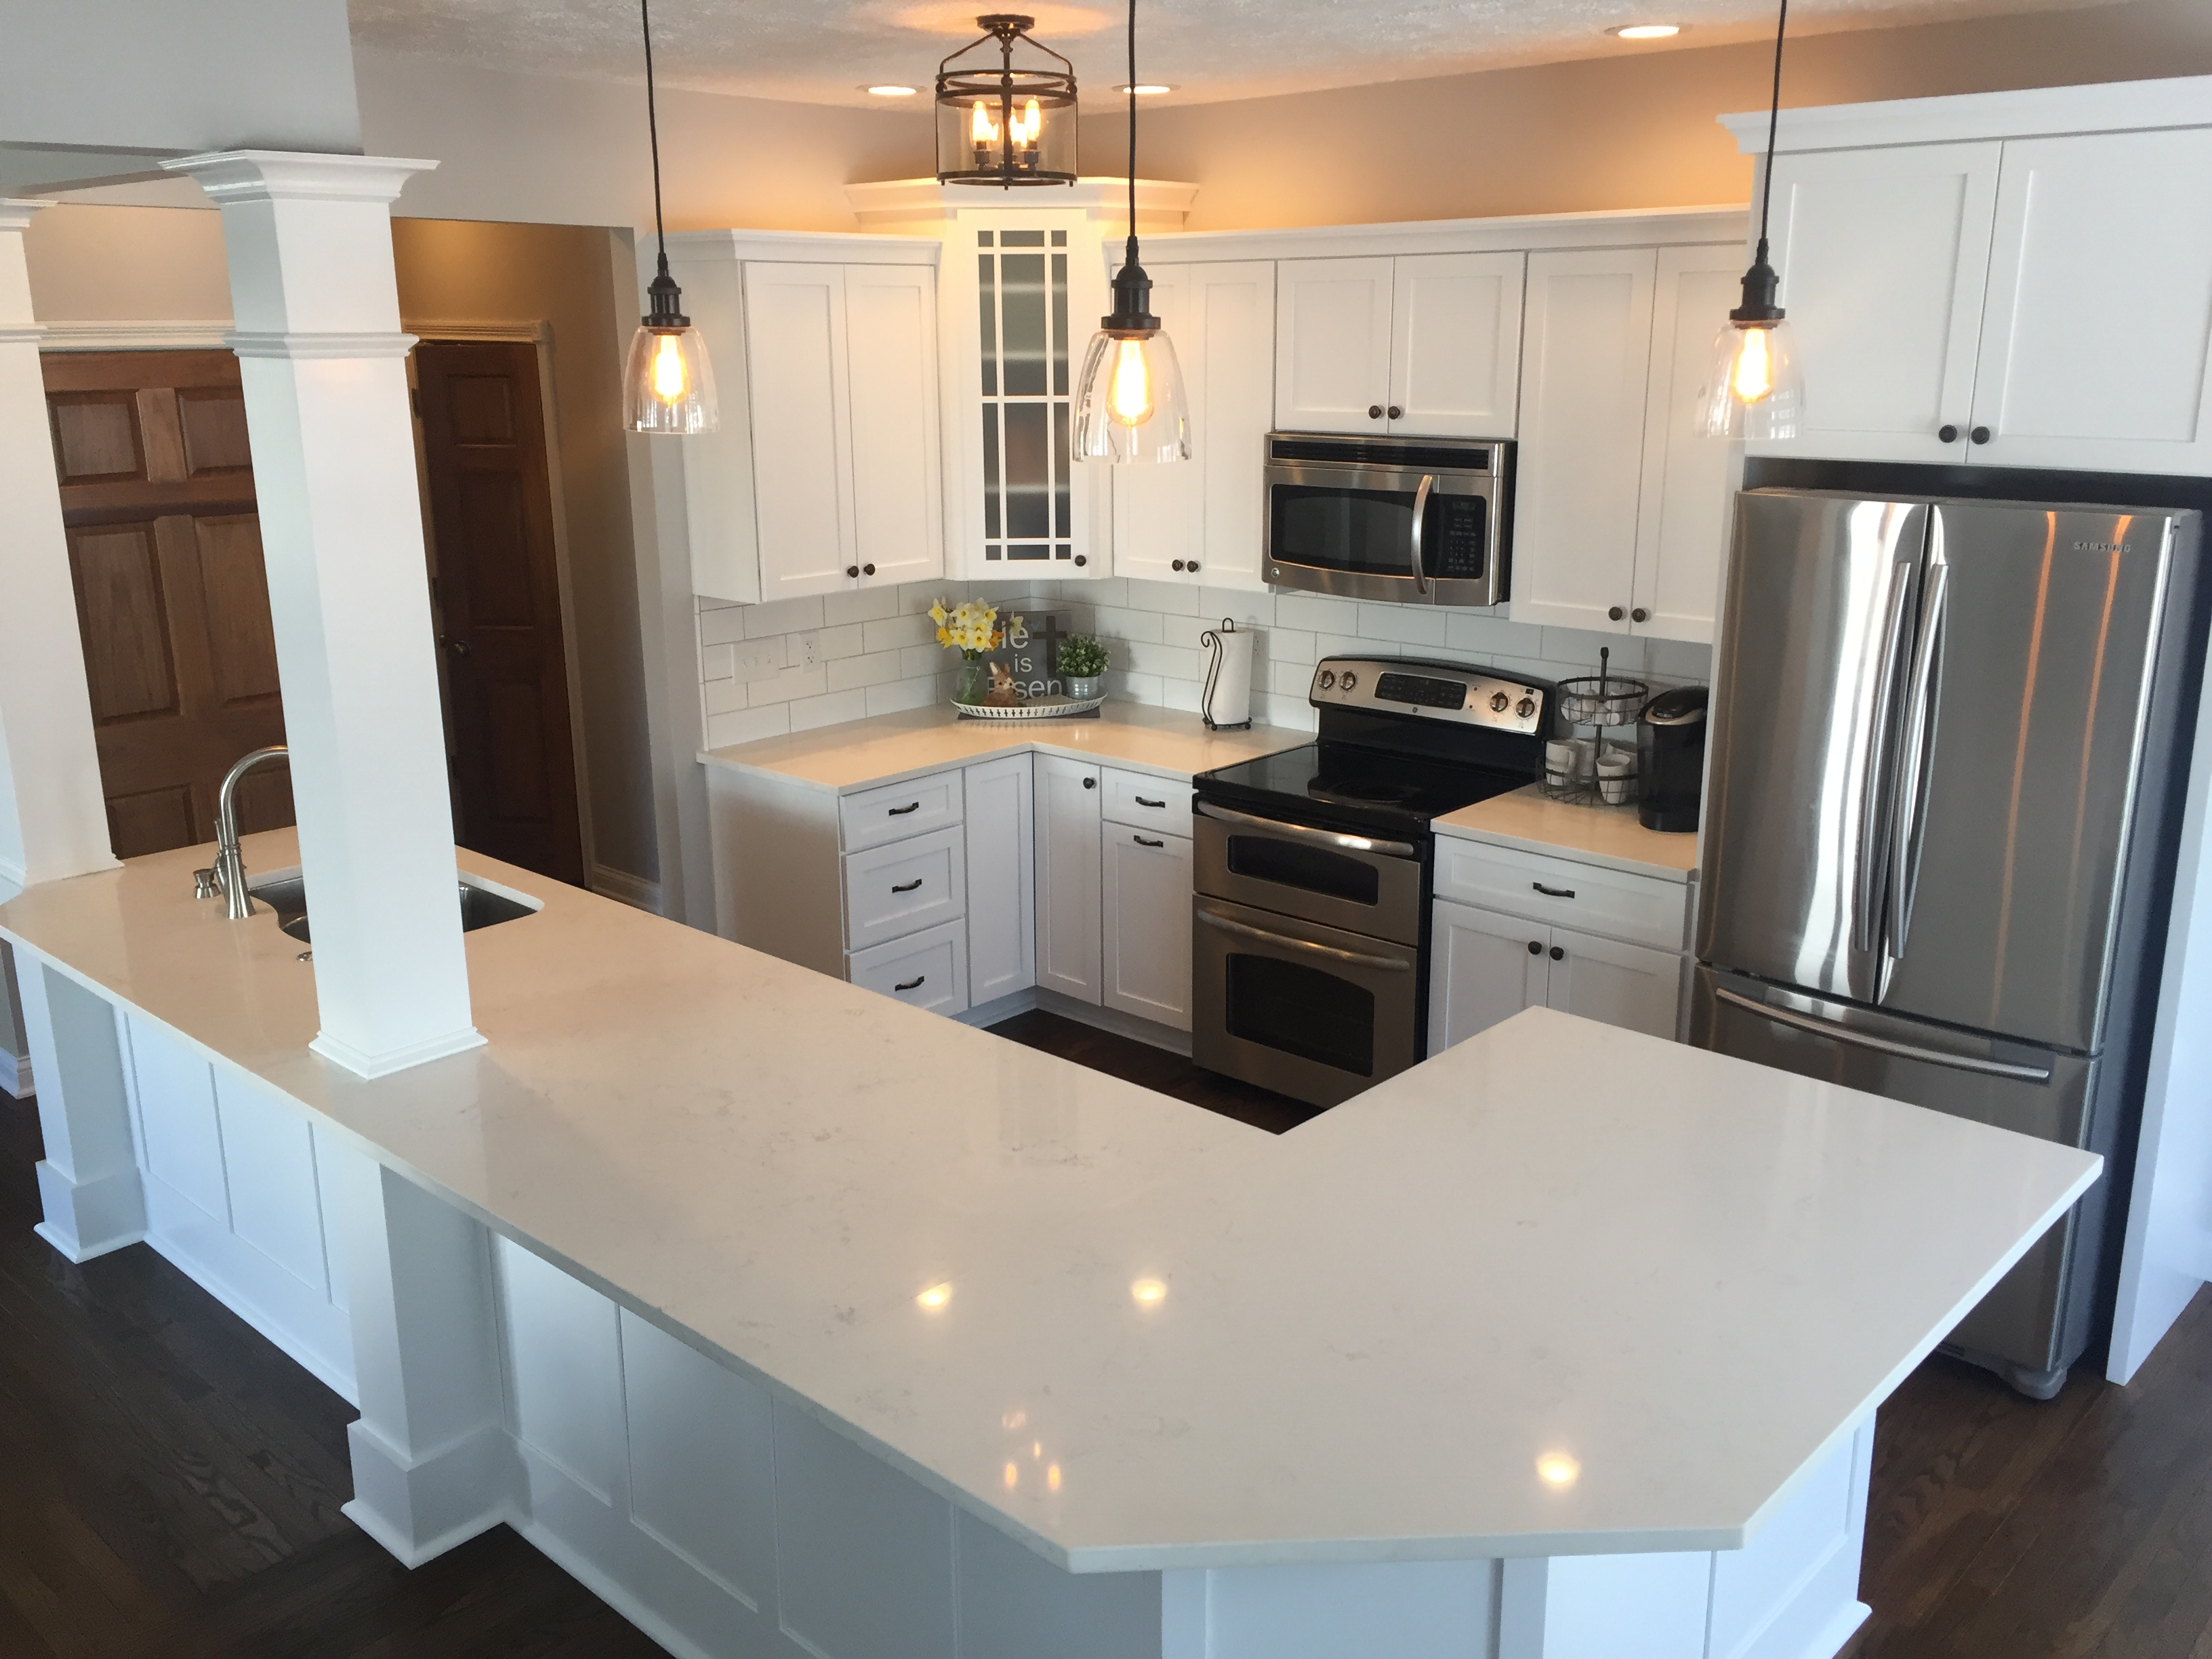 Discount, Wholesale Prices Kitchen Cabinets Indianapolis